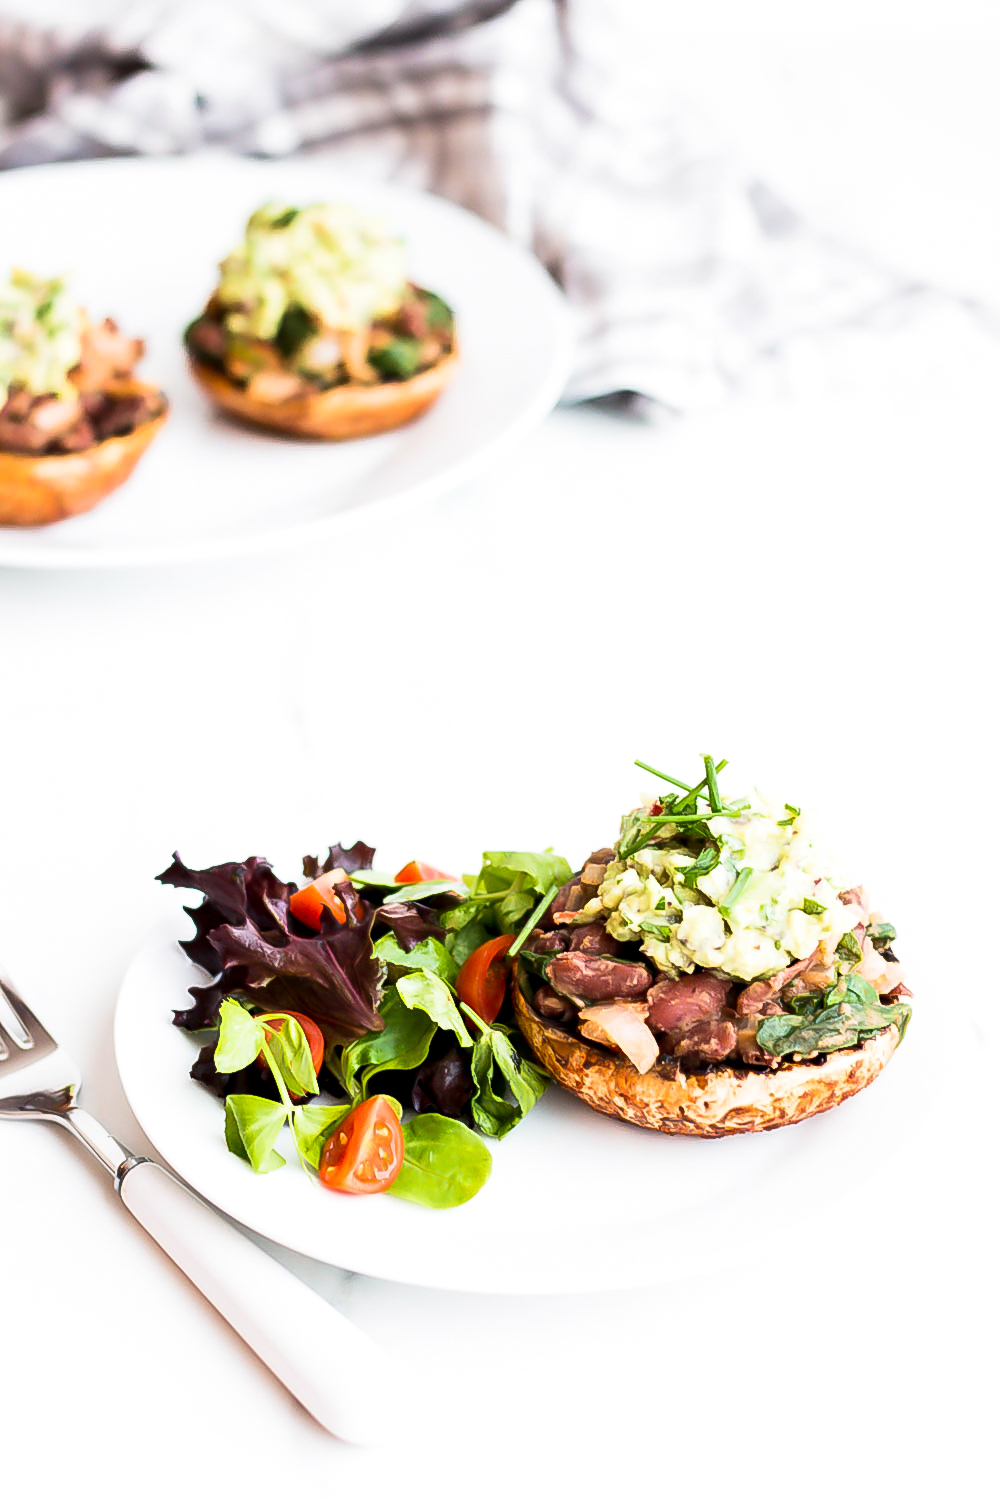 These bean-stuffed portobello mushrooms with avocado mash, are filled with plant-based protein, healthy fats, good carbs, and beneficial fiber! https://www.spotebi.com/recipes/bean-stuffed-portobello-mushrooms-with-avocado-mash/